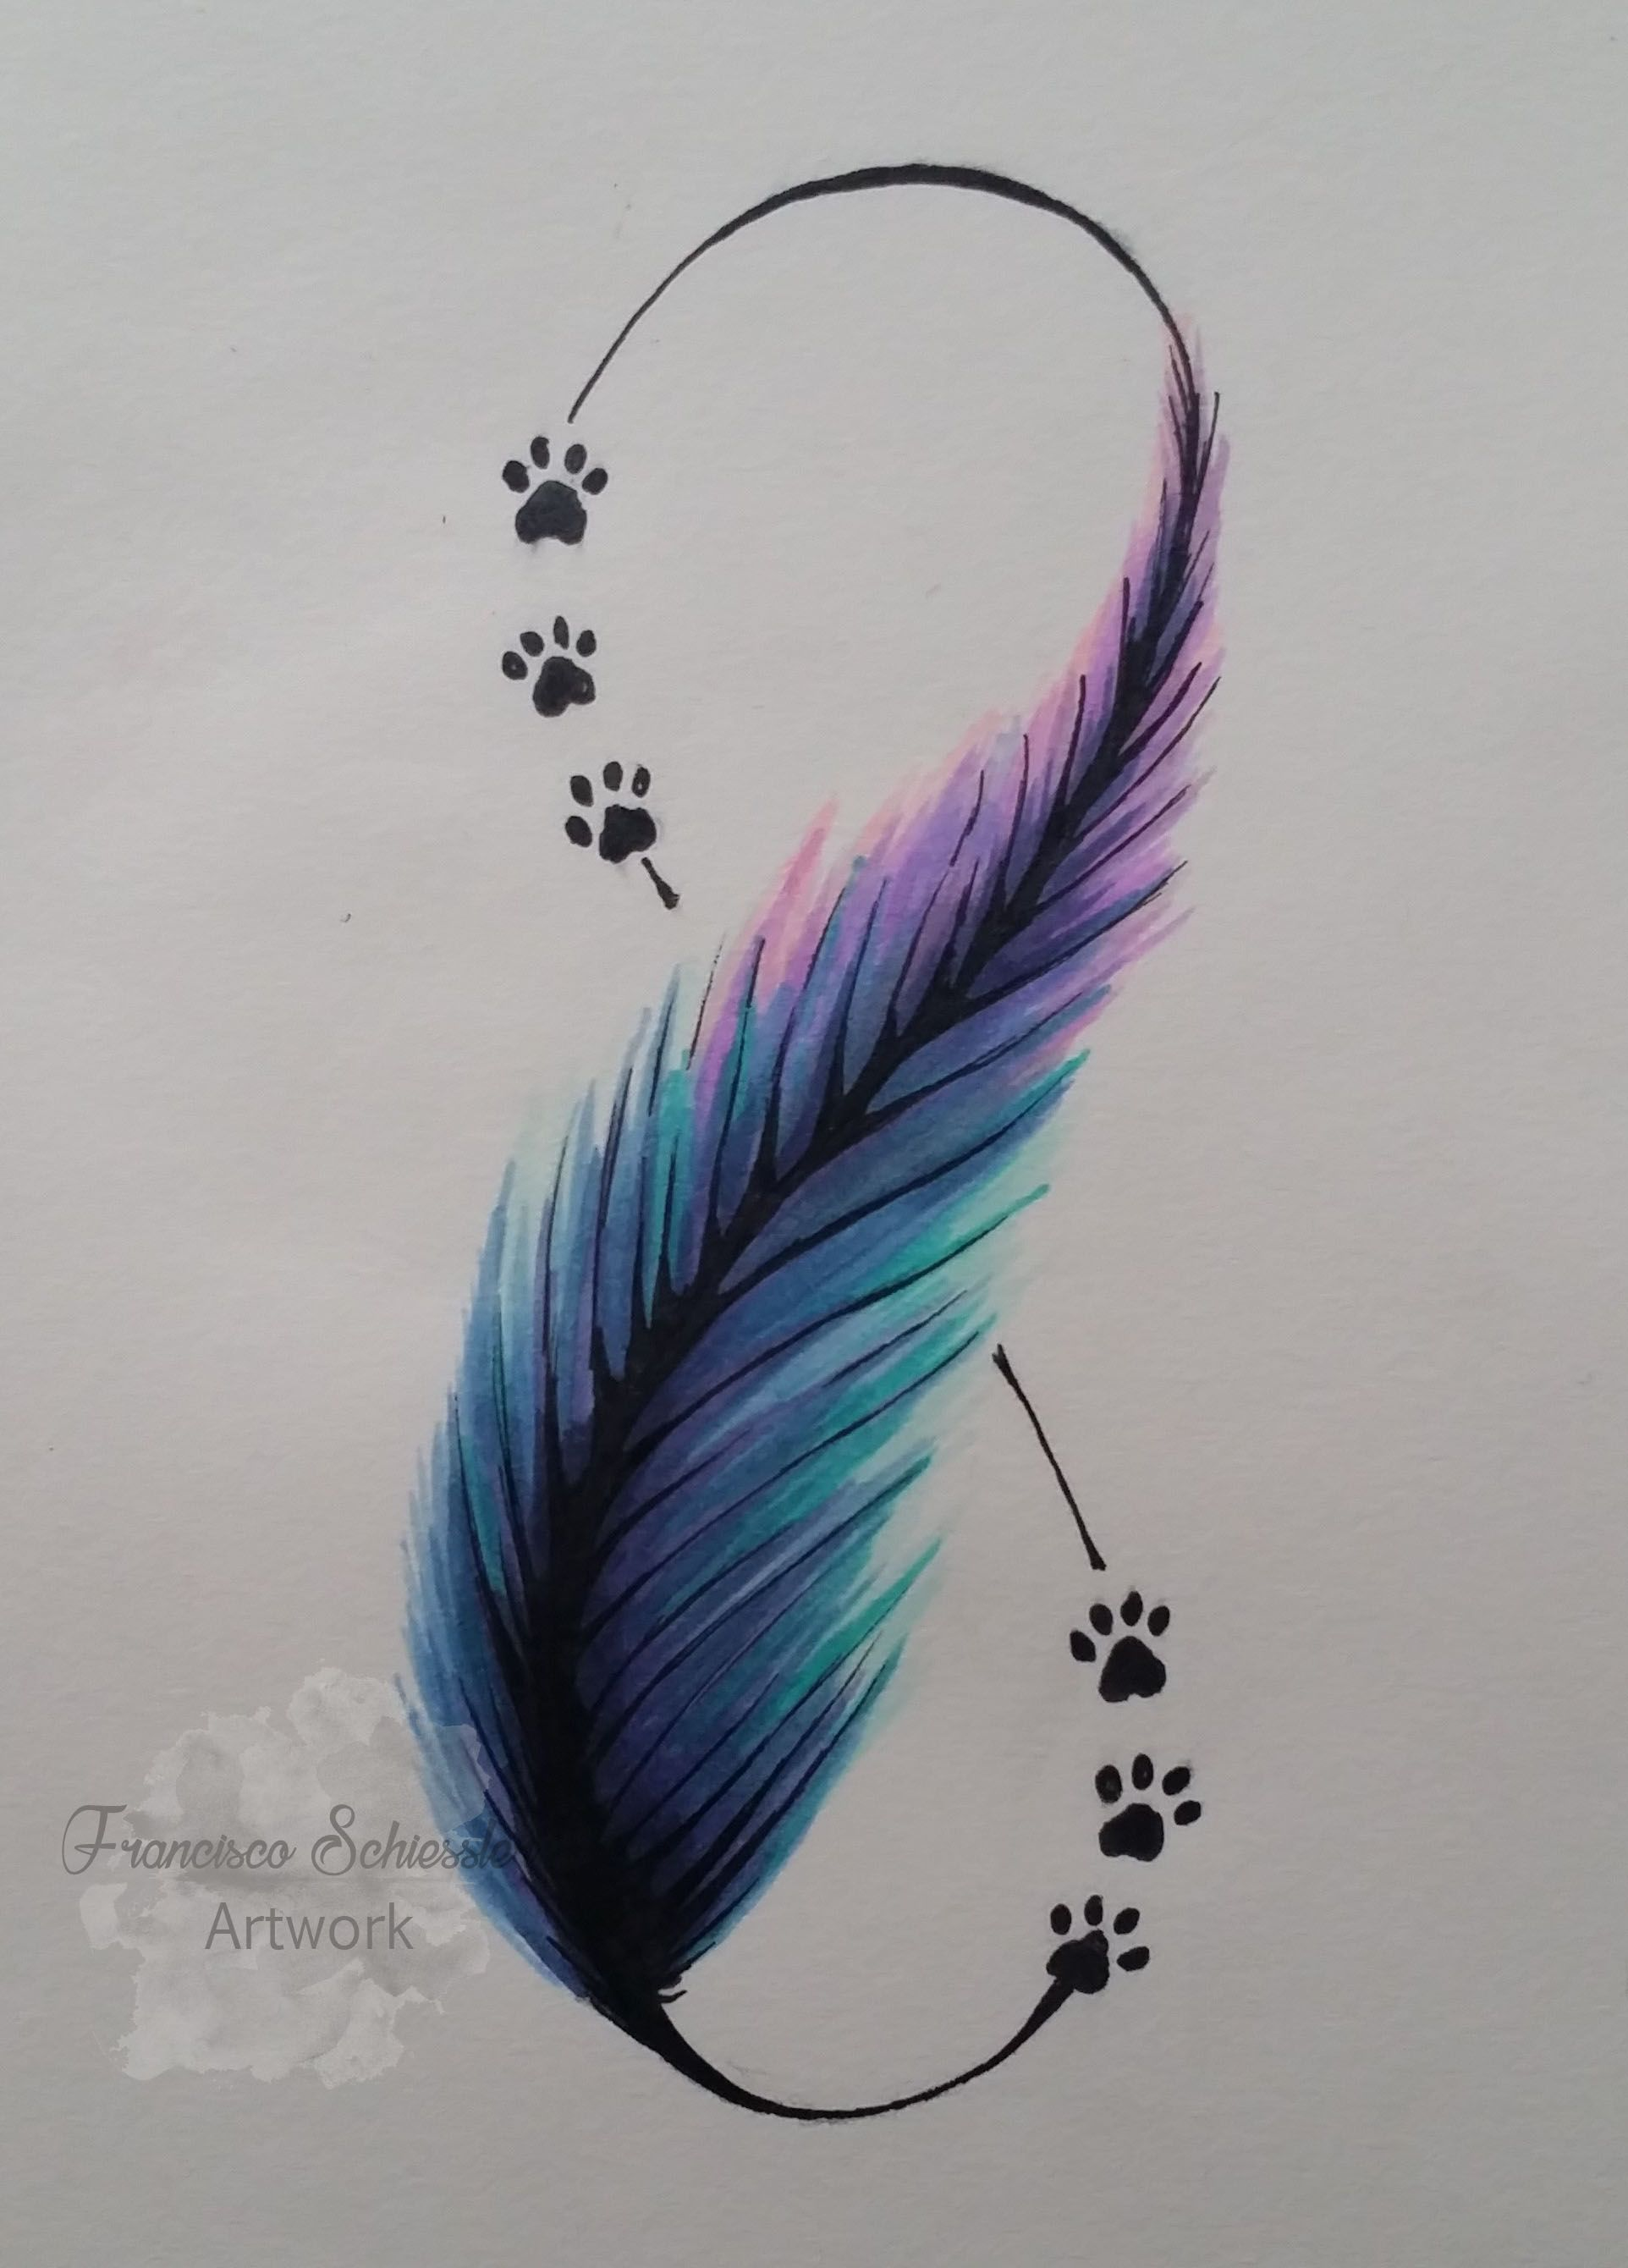 Pluma Estilo Acuarela Feather Watercolor Doglovers Infinito